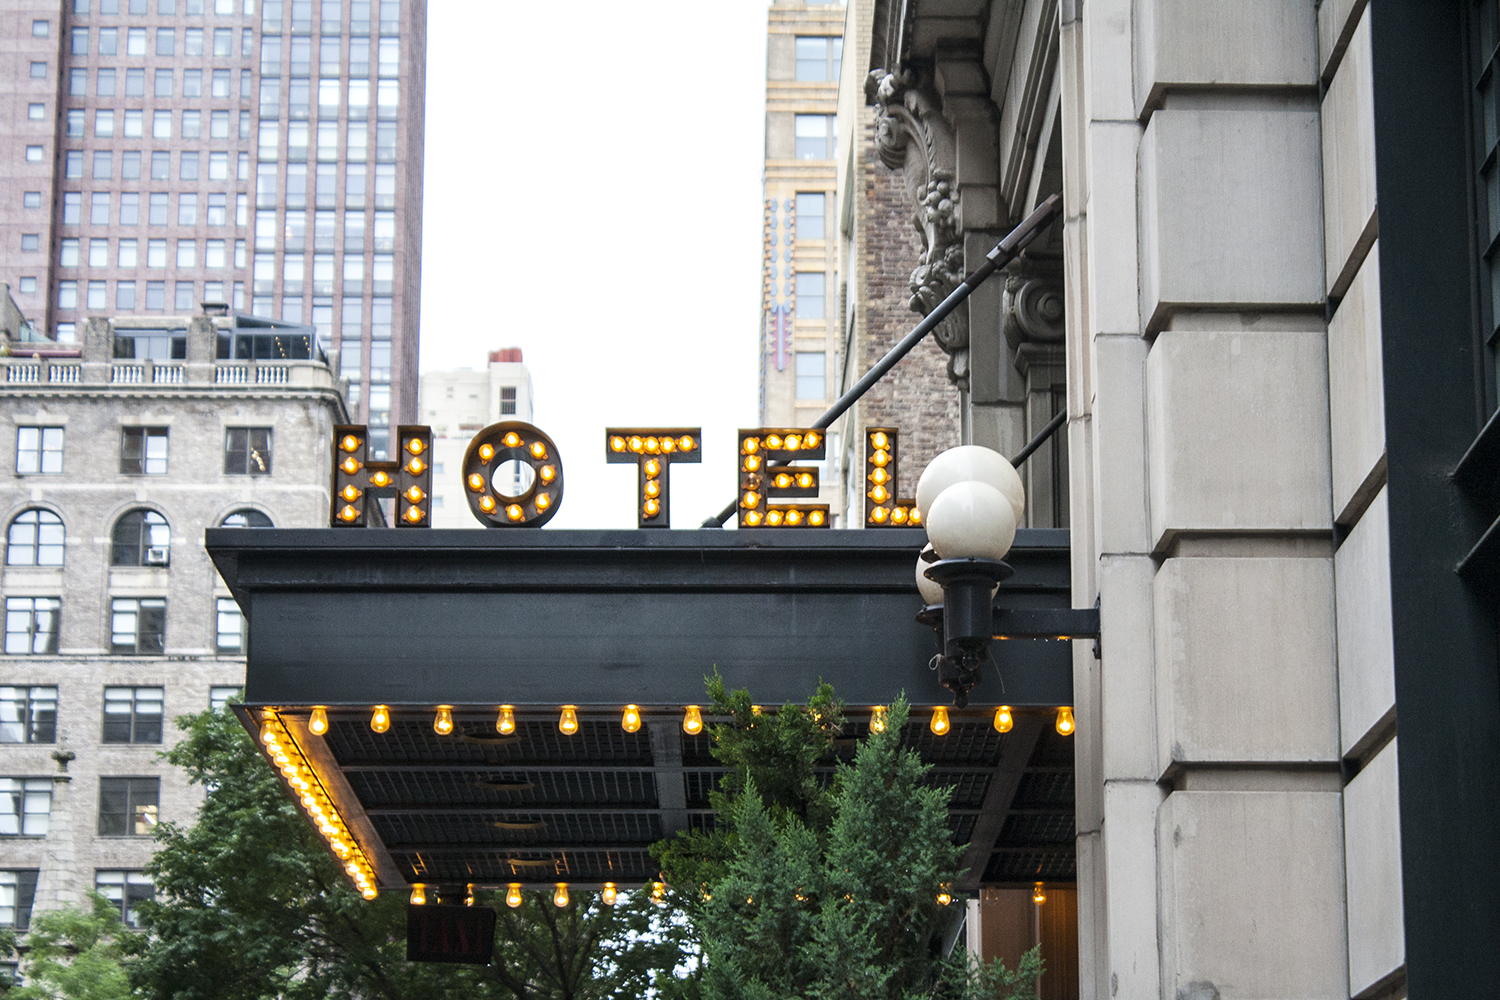 11nyc-newyork-acehotel-travel-diary-architecture-style